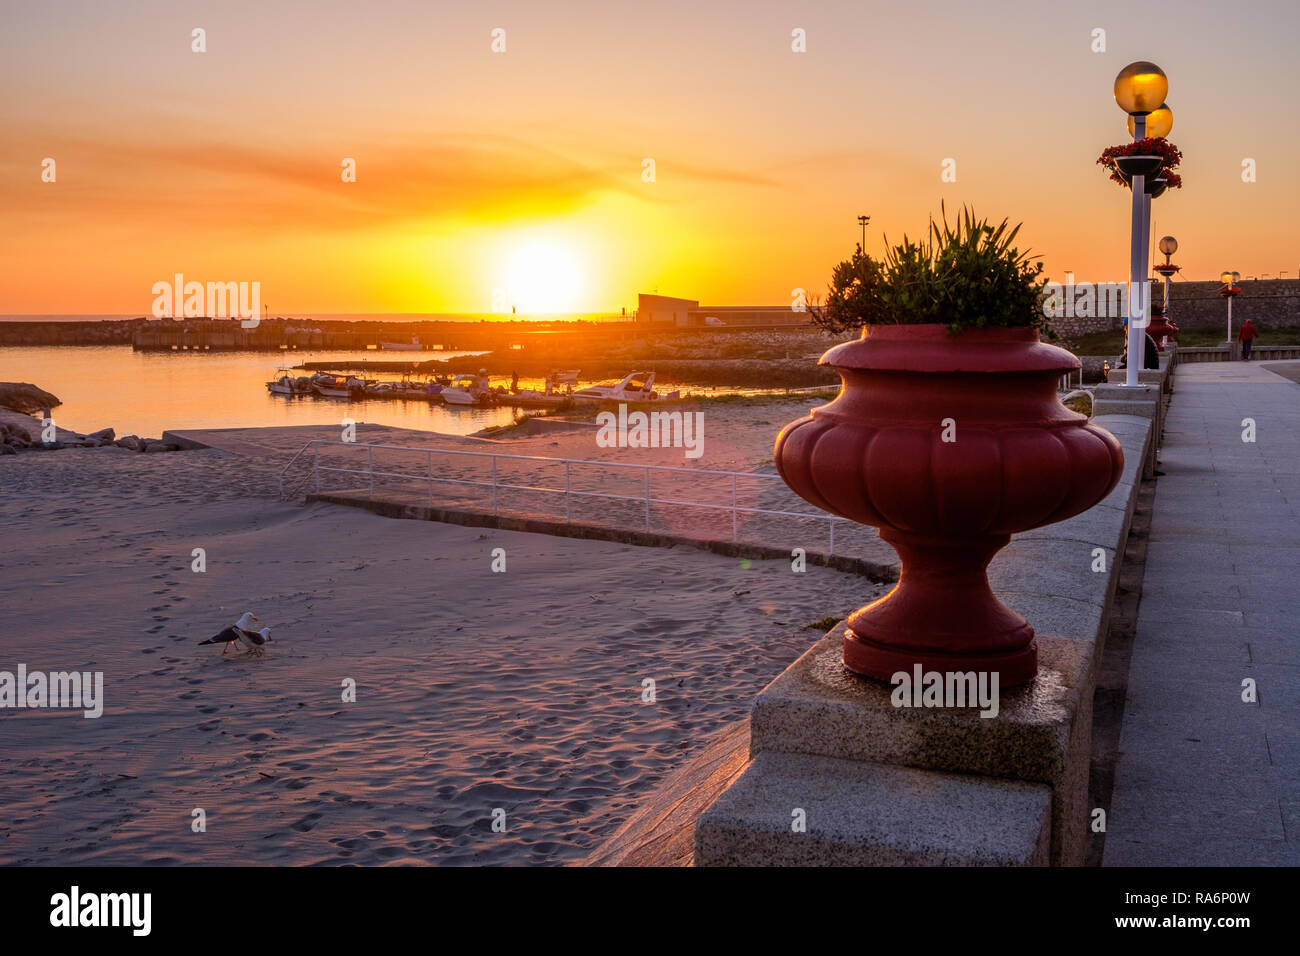 Vila Praia de Ancora, Portugal - May 04, 2018 : sunset, Vila Praia de Ancora, Portugal - Stock Image